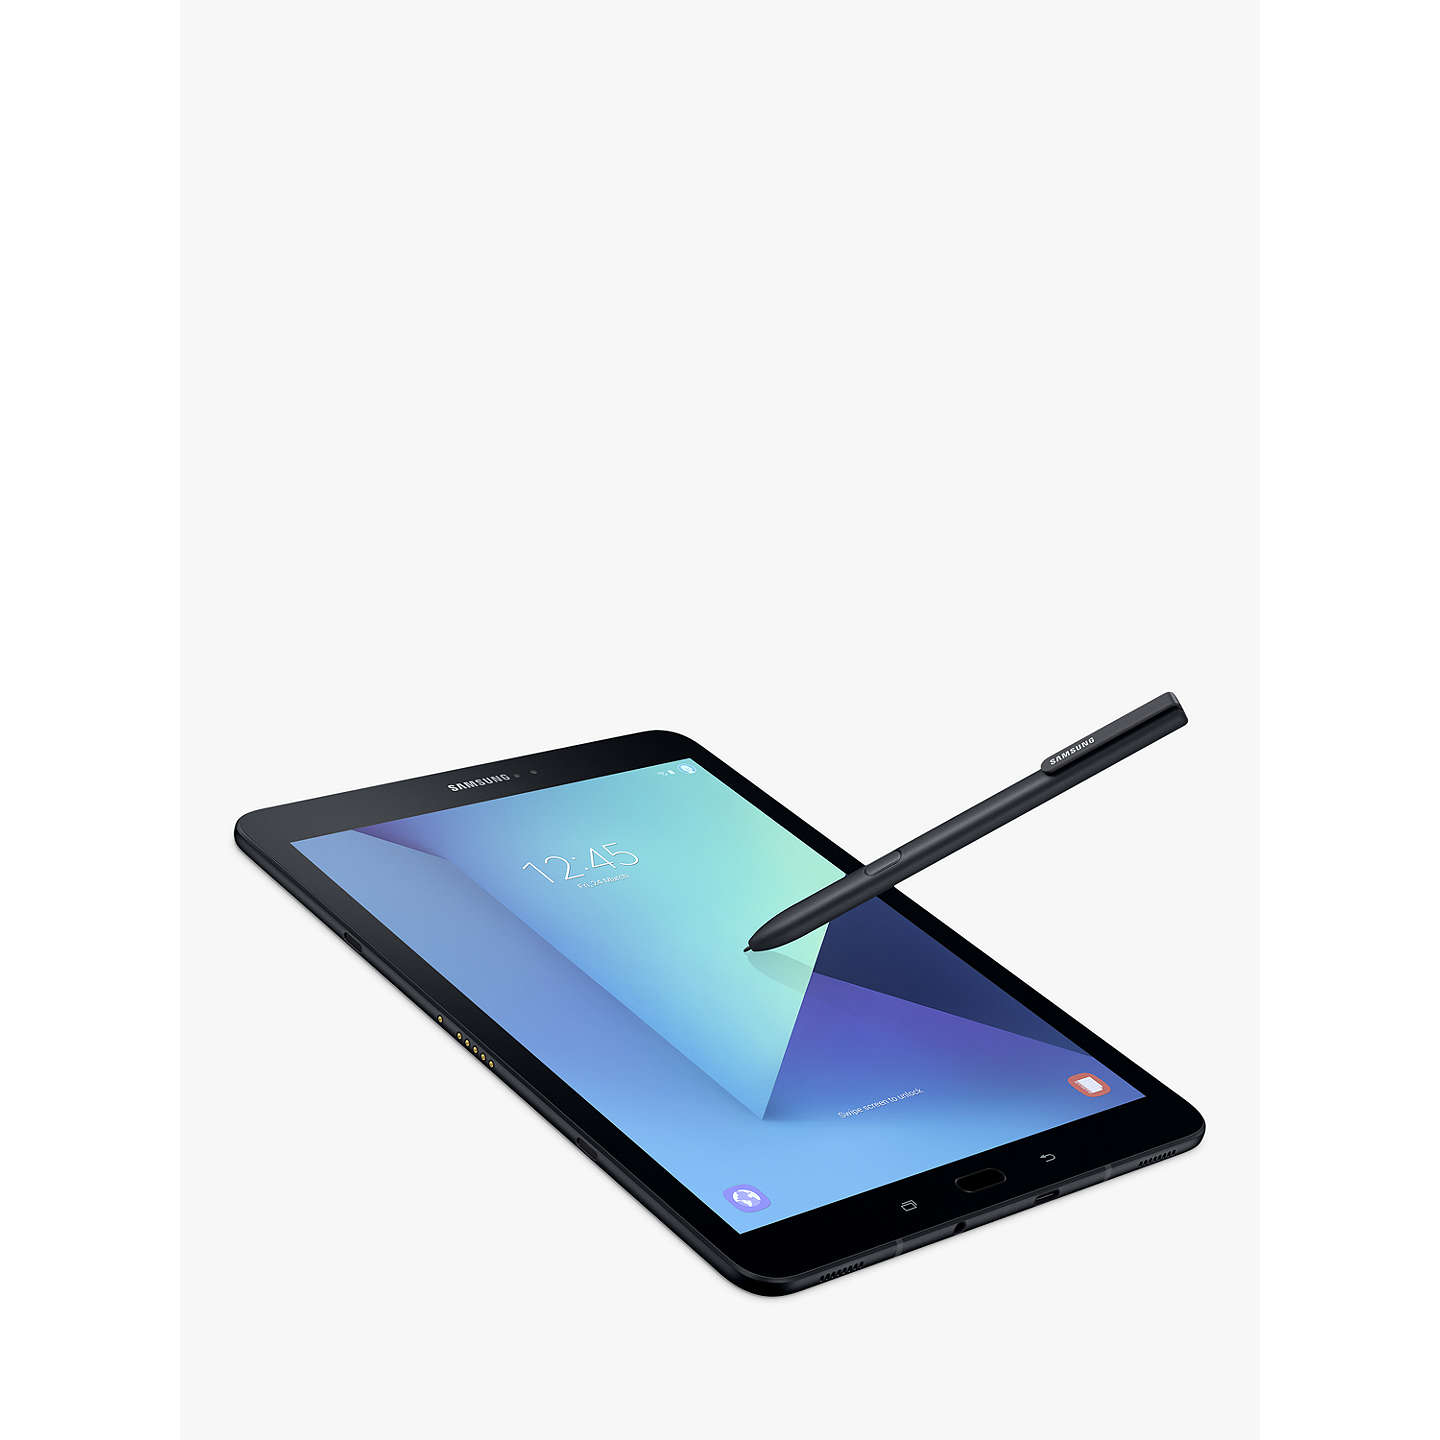 "BuySamsung Galaxy Tab S3 Tablet with S Pen, Android, 32GB, 4GB RAM, Wi-Fi, 9.7"", Black Online at johnlewis.com"